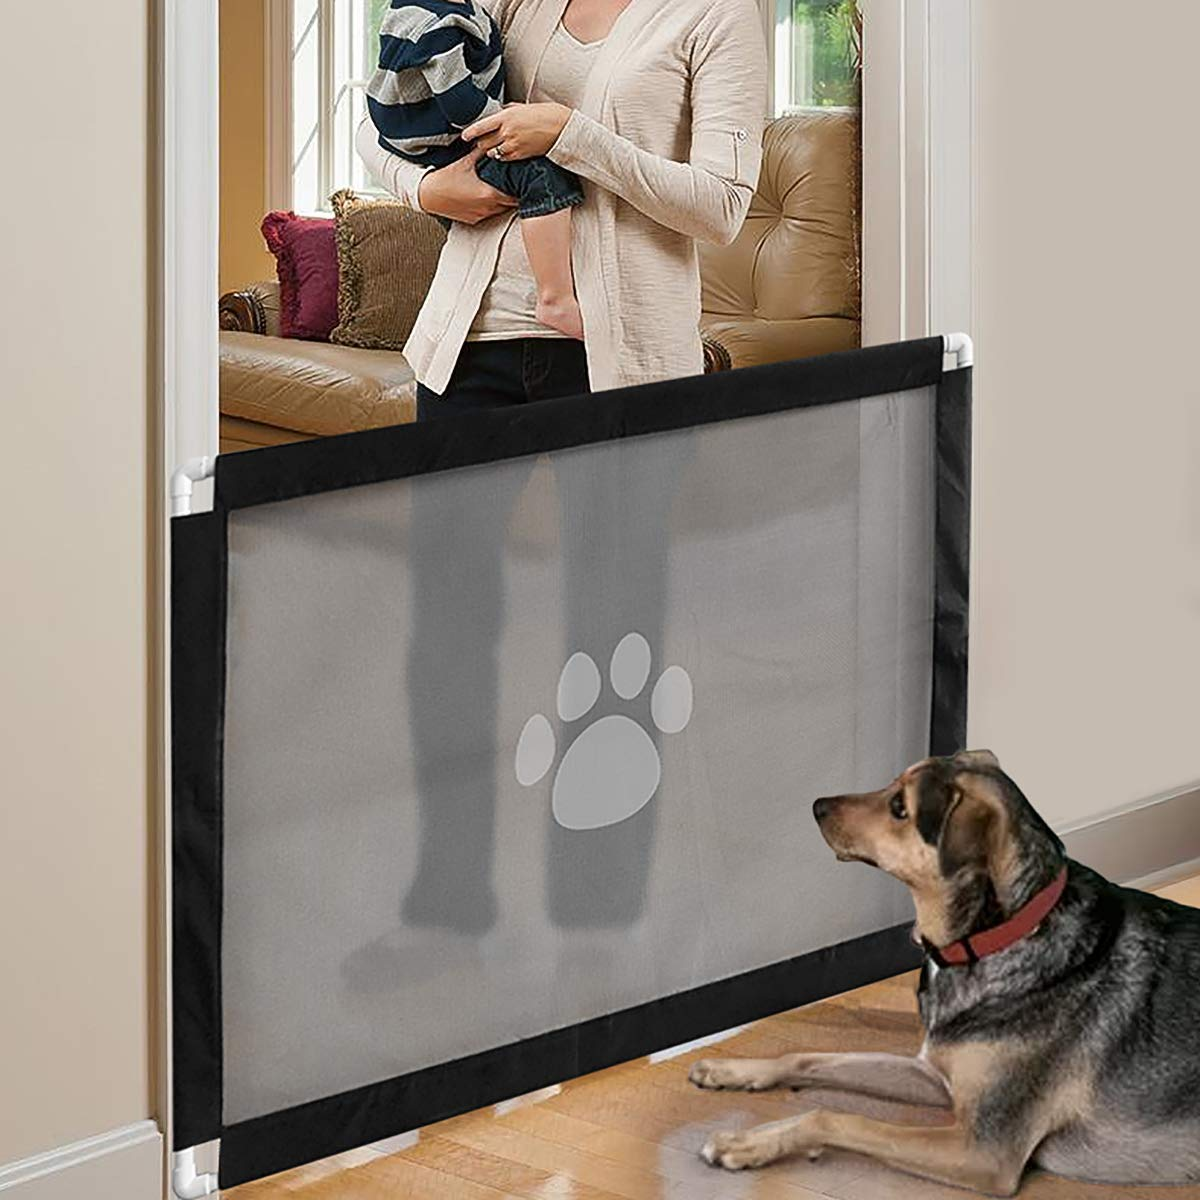 Magic Gate Portable Folding Safe Guard For Baby House Kitchen,Stairs Doors